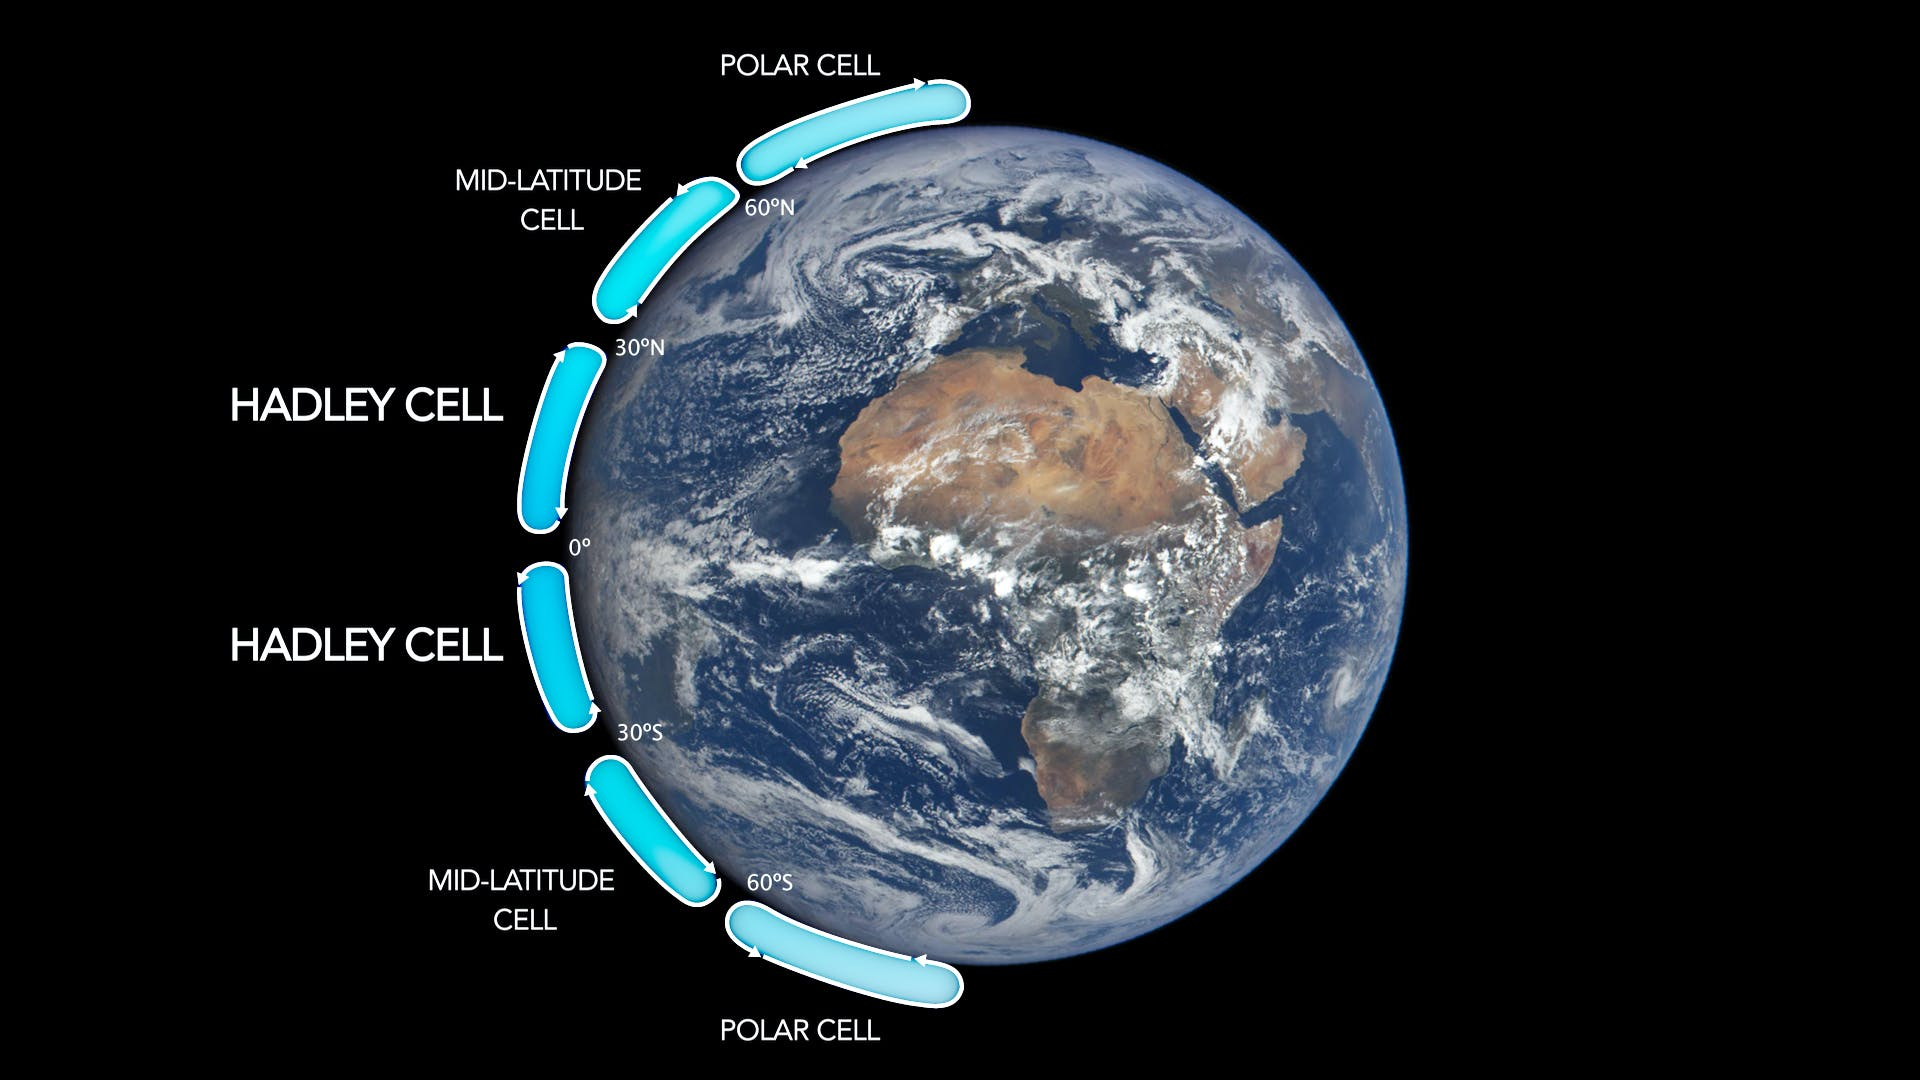 A picture of the Earth with different climate circulation cells labeled: Hadley cells, Ferrel cells, and Polar cells